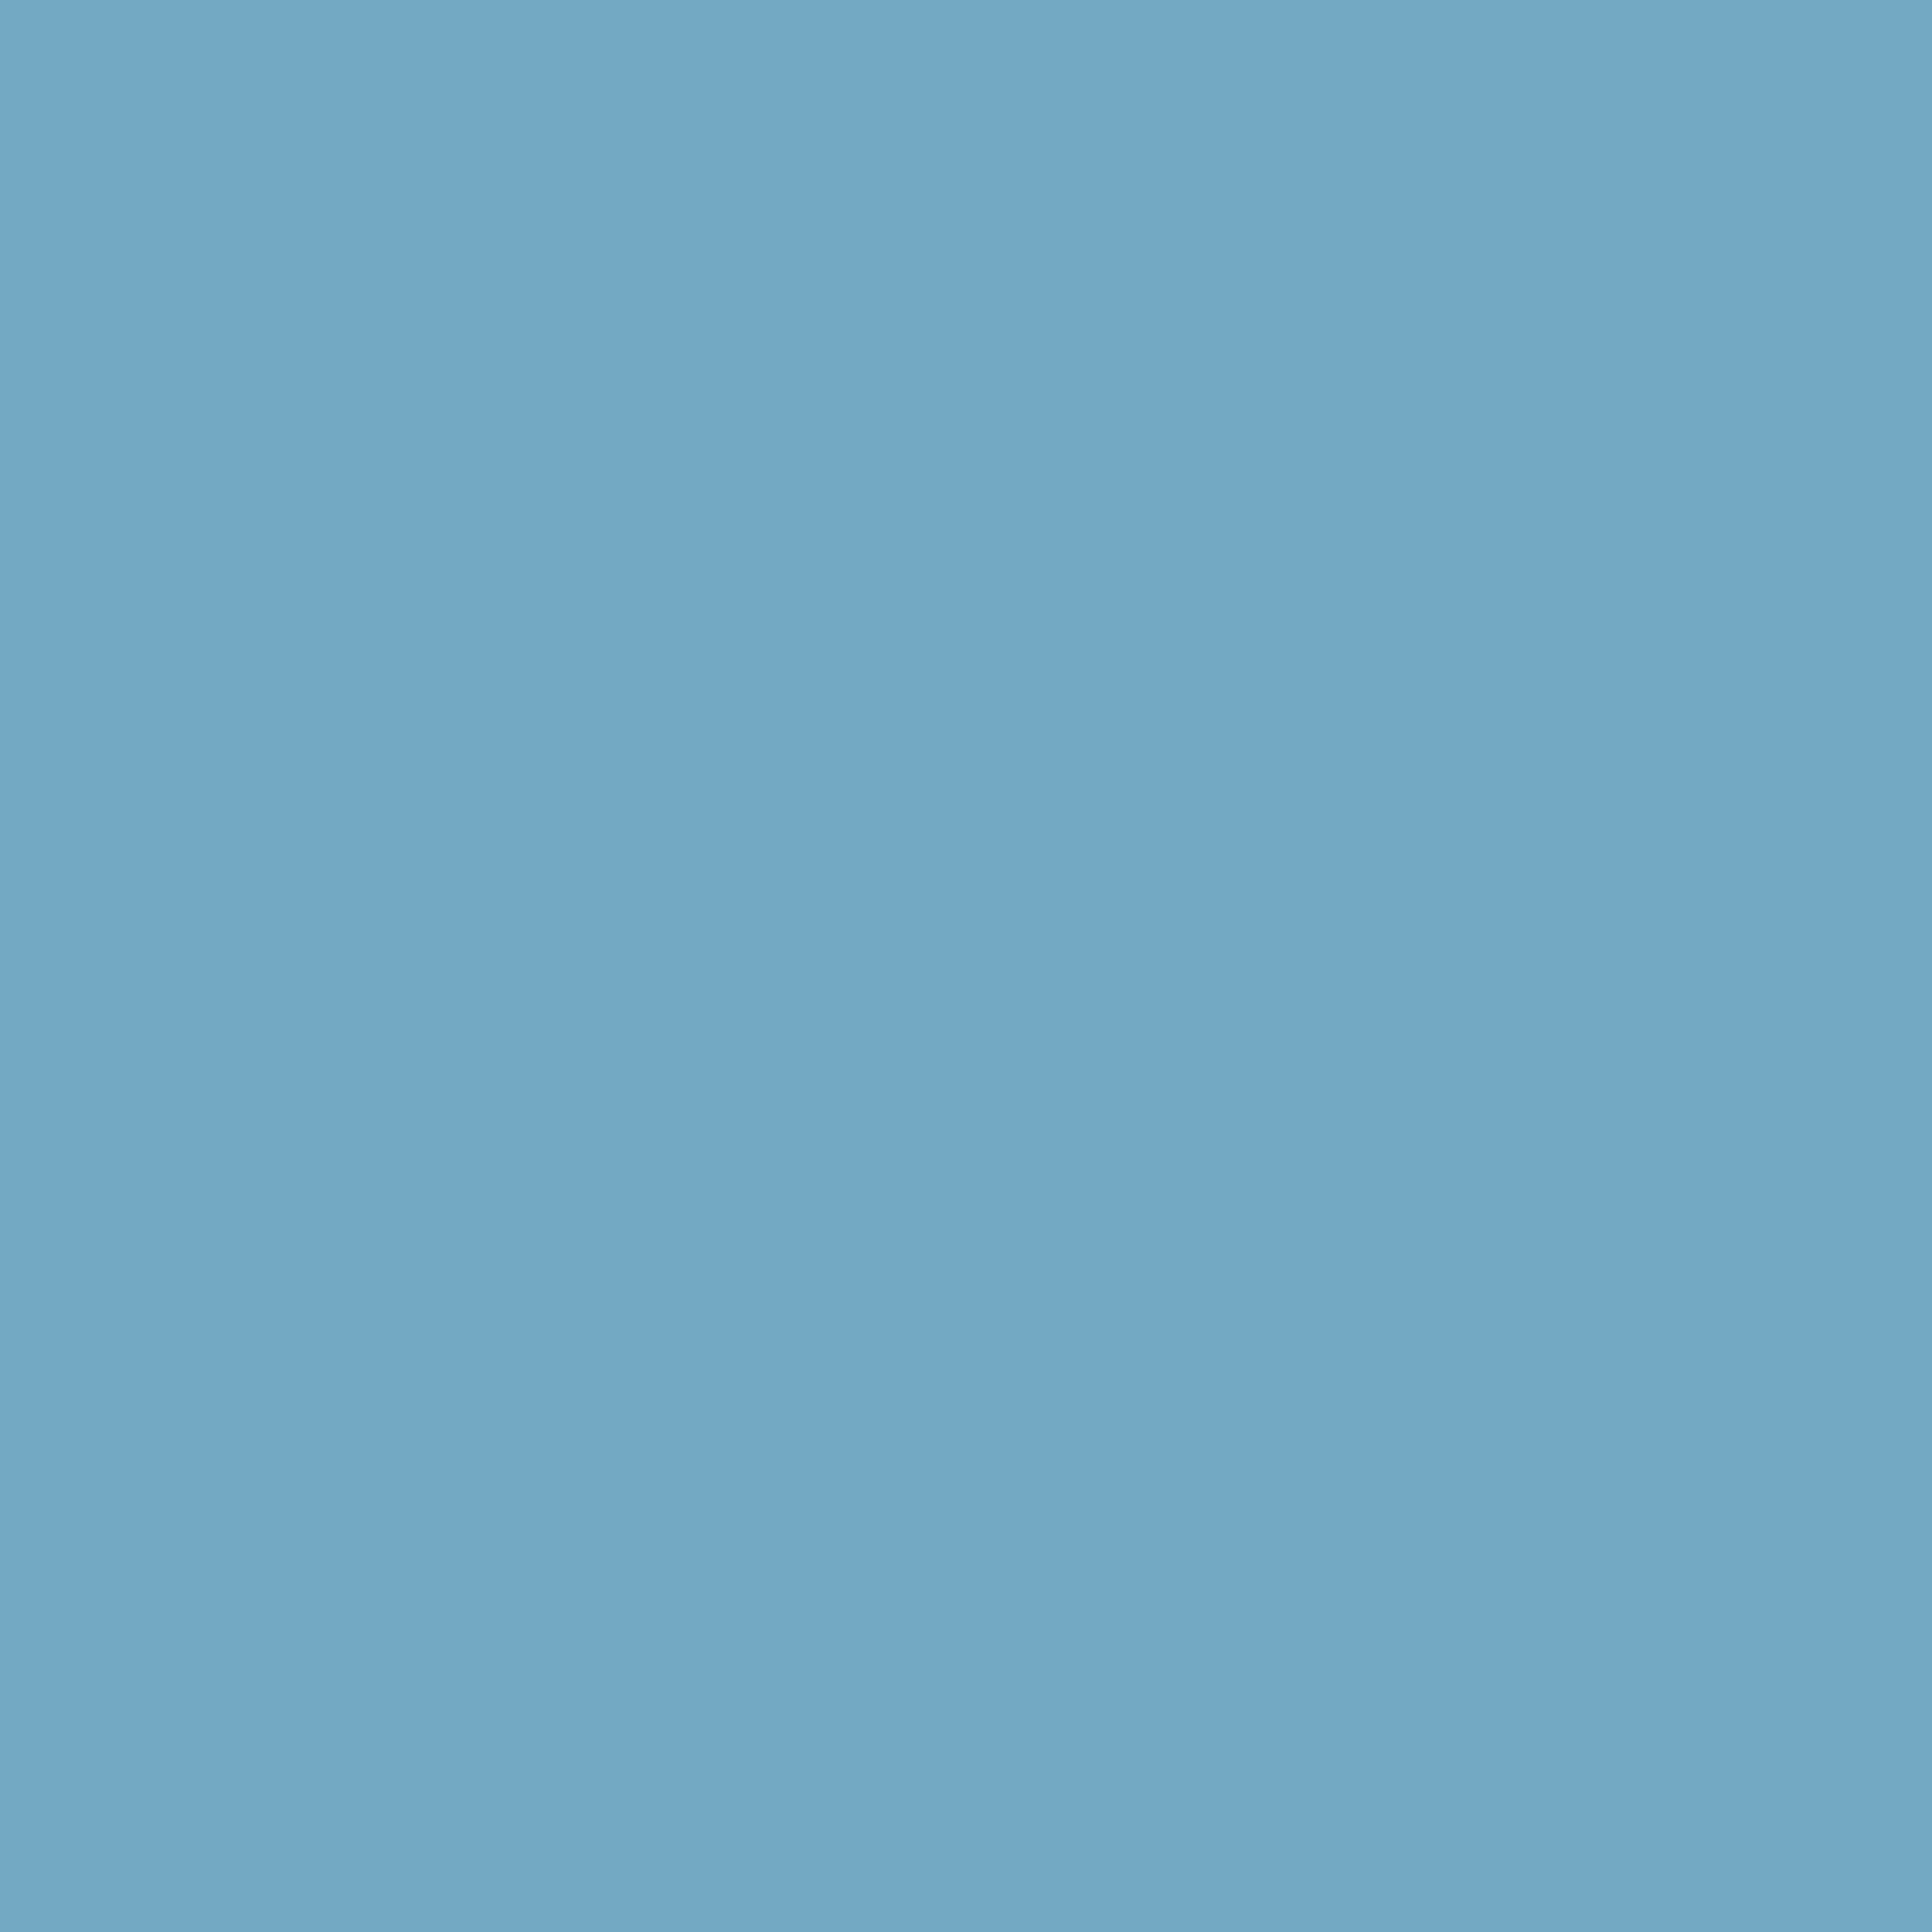 2048x2048 Moonstone Blue Solid Color Background